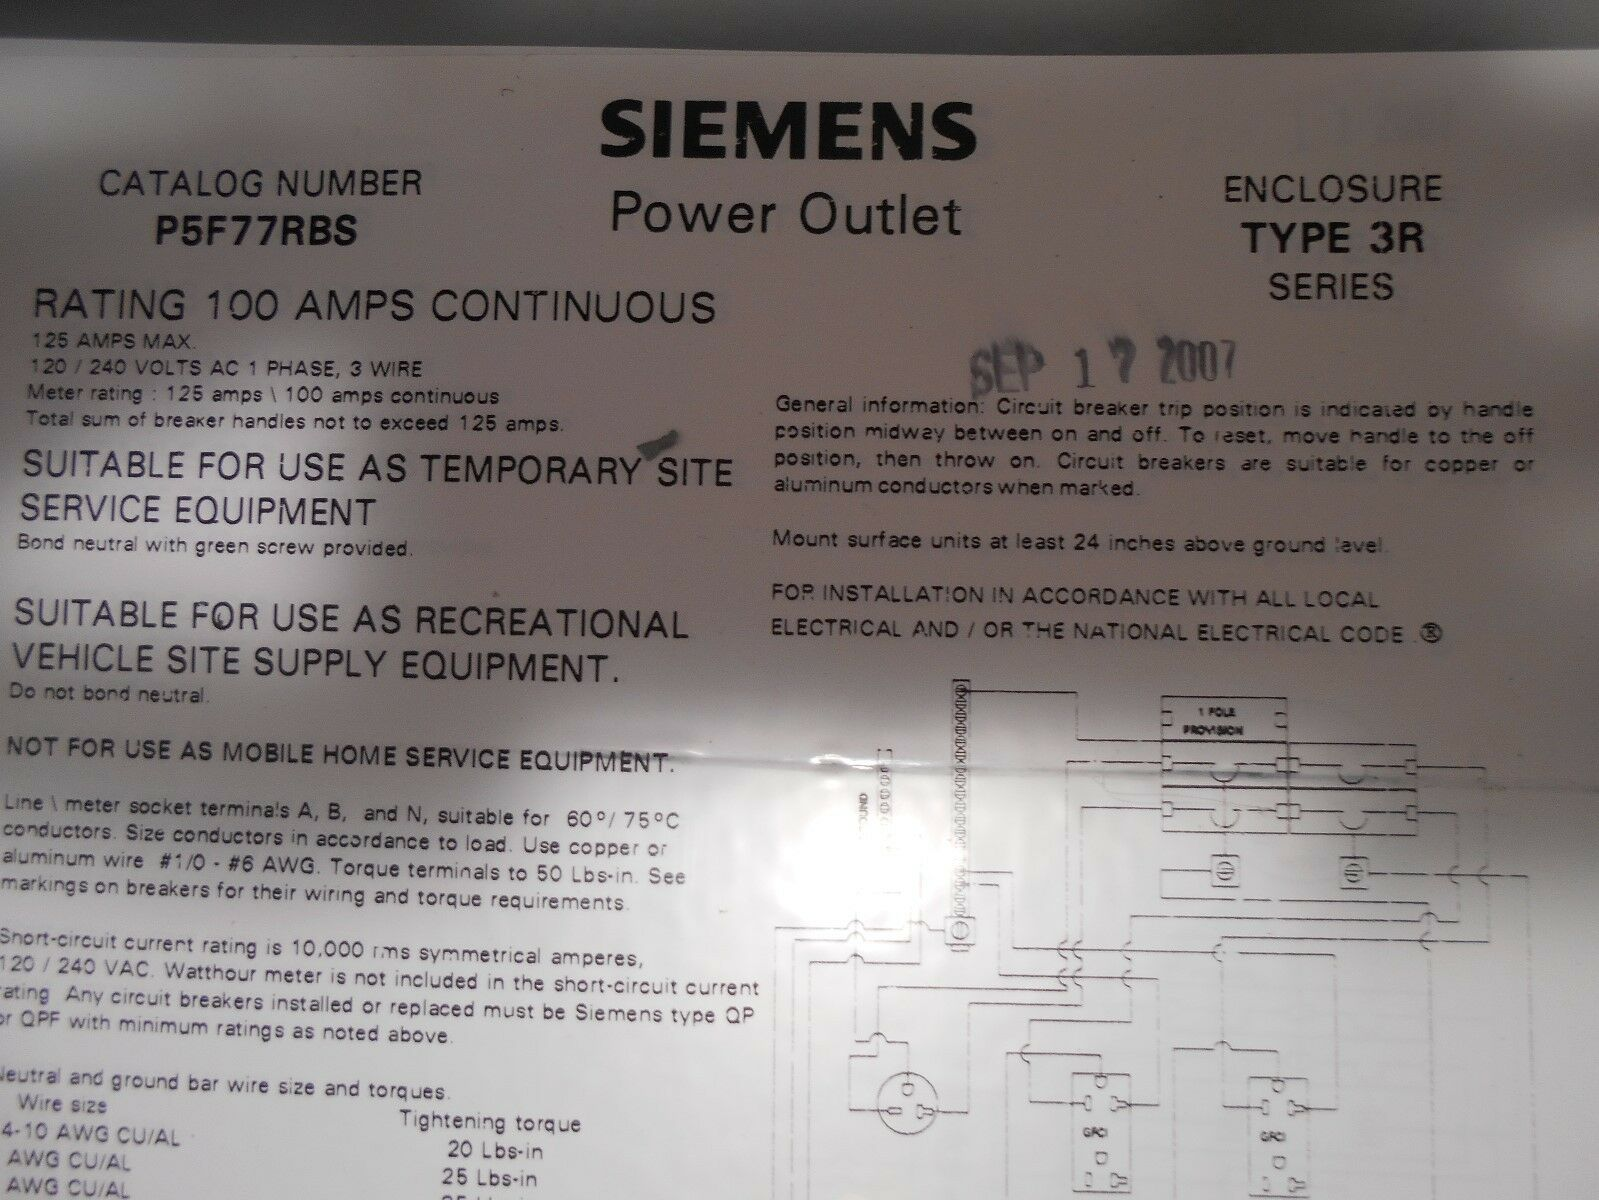 Siemens p5f77rbs power outlet panel 60a 120240vac 1 phase 3 wire ebay keyboard keysfo Image collections